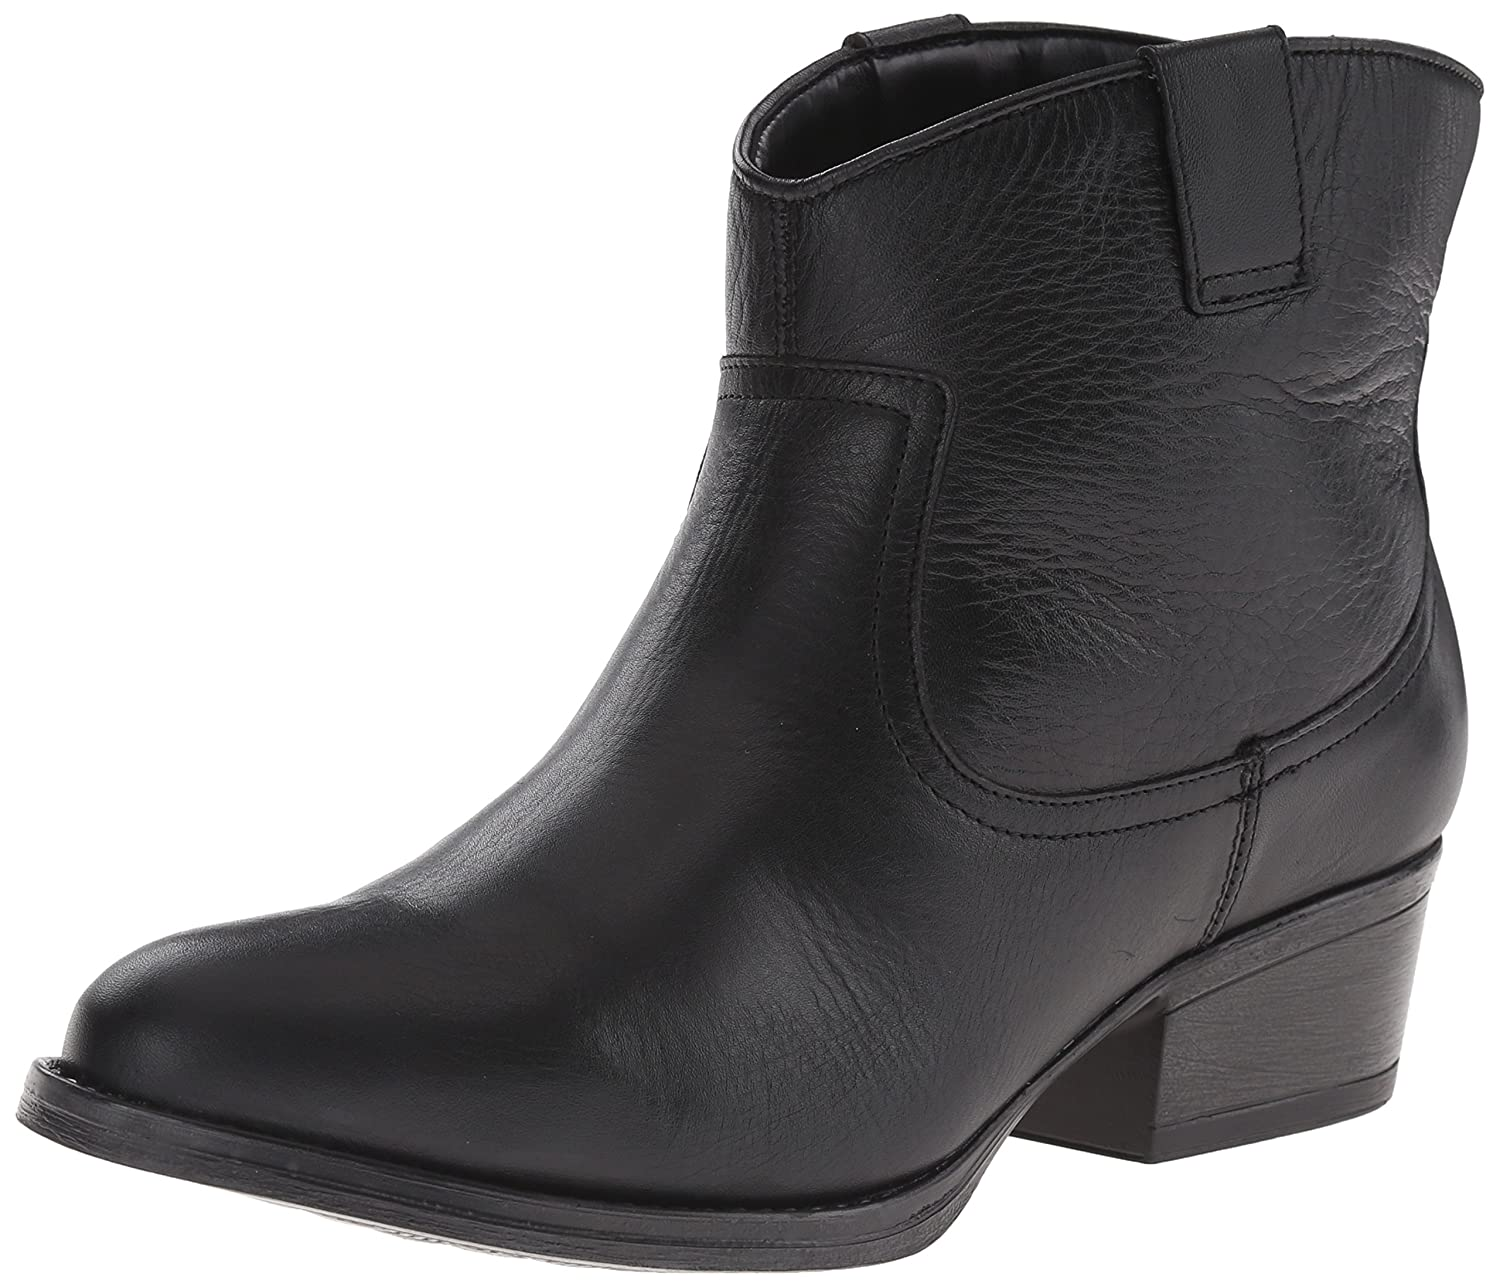 Kenneth Cole REACTION Women's Hot Step Western Boot B00WRI17Y6 10 B(M) US|Black